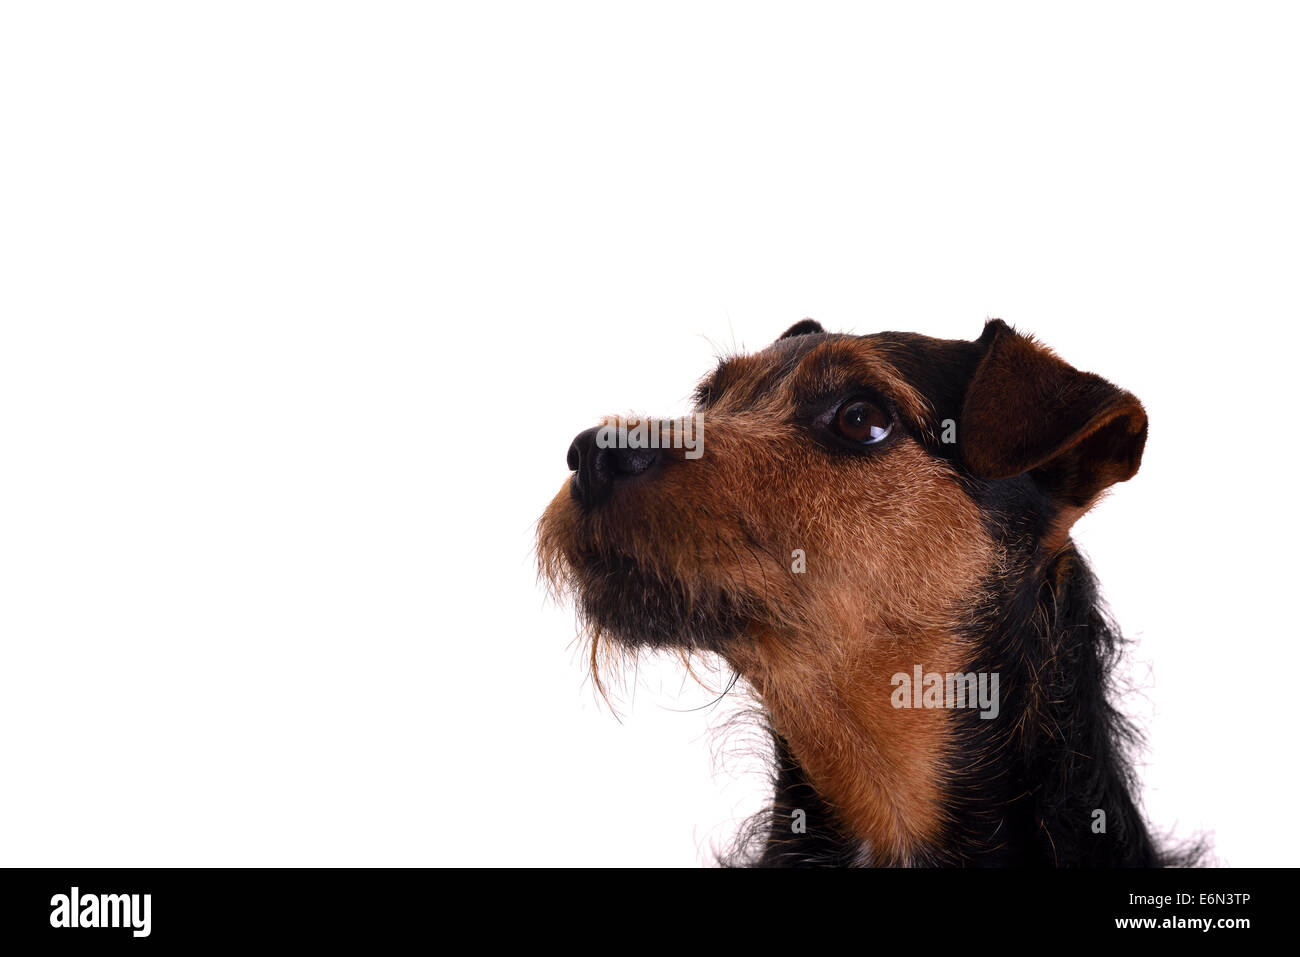 Head shot on a white background of an attentive terrier dog. Breed is a Lakeland / Patterdale terrier cross. - Stock Image